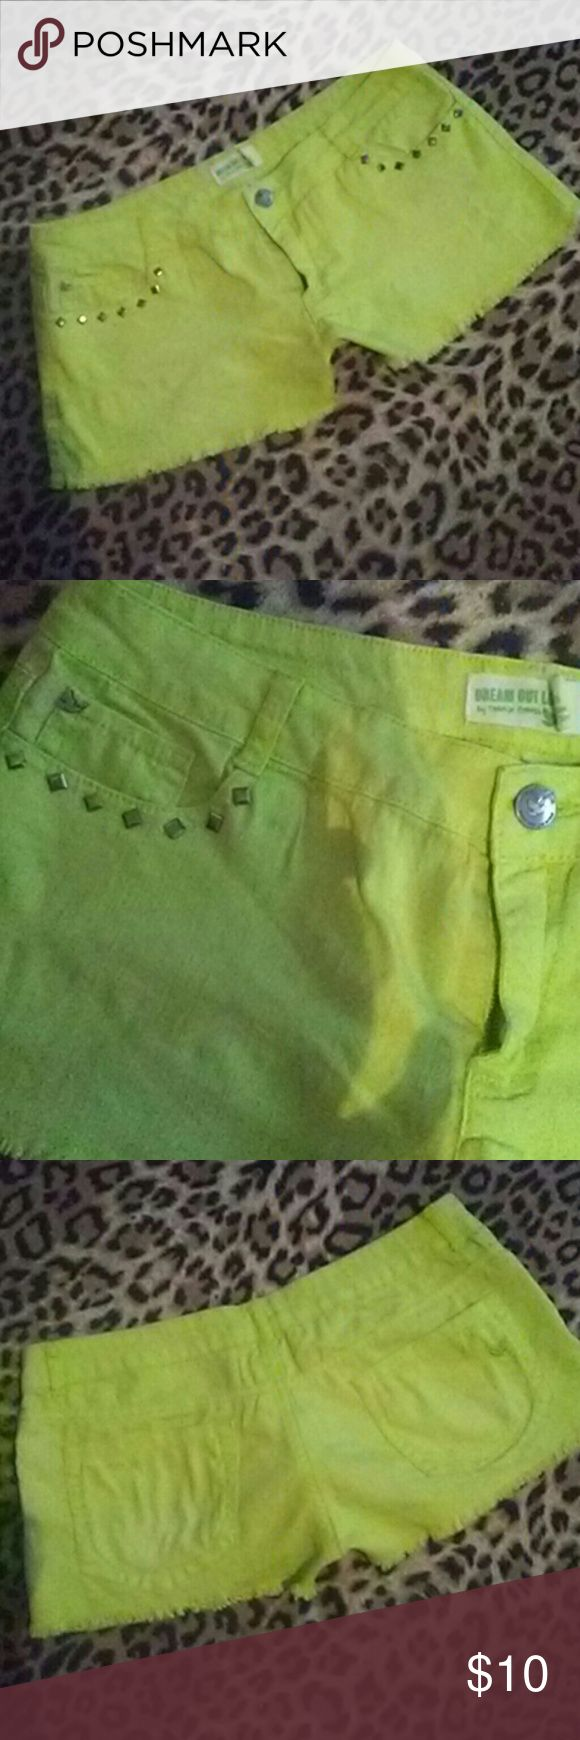 Dream Out Loud lime green denim shorts Size 1 Dream Out Loud lime green denim shorts with studded detail pockets. Size 1 Dream Out Loud Shorts Jean Shorts